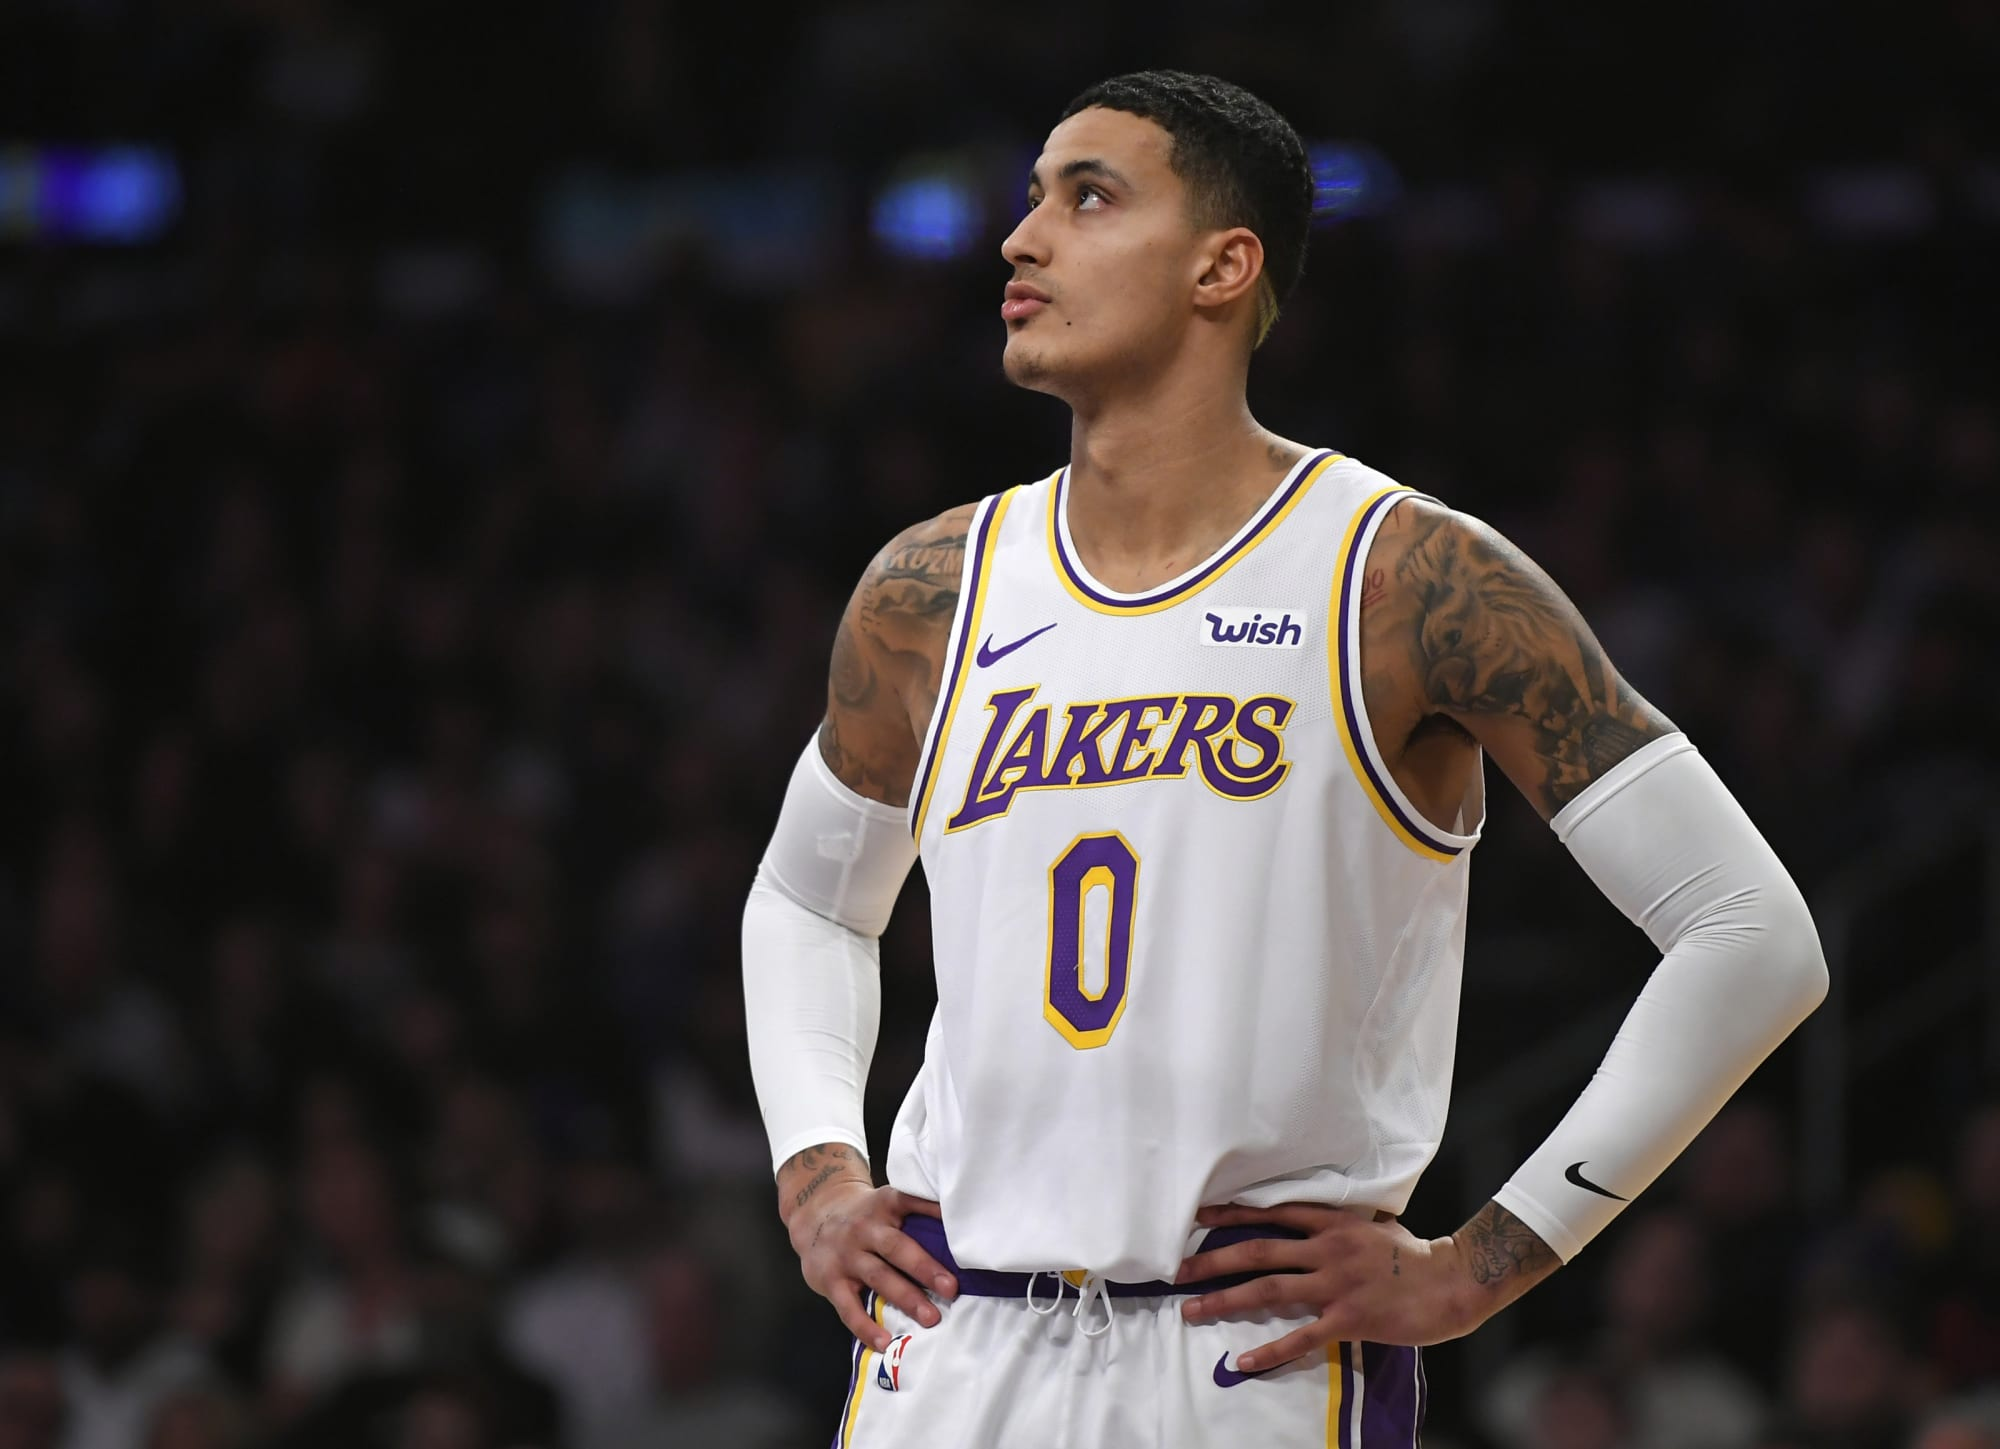 Kyle Kuzma gets roasted for his ridiculous post-game glasses